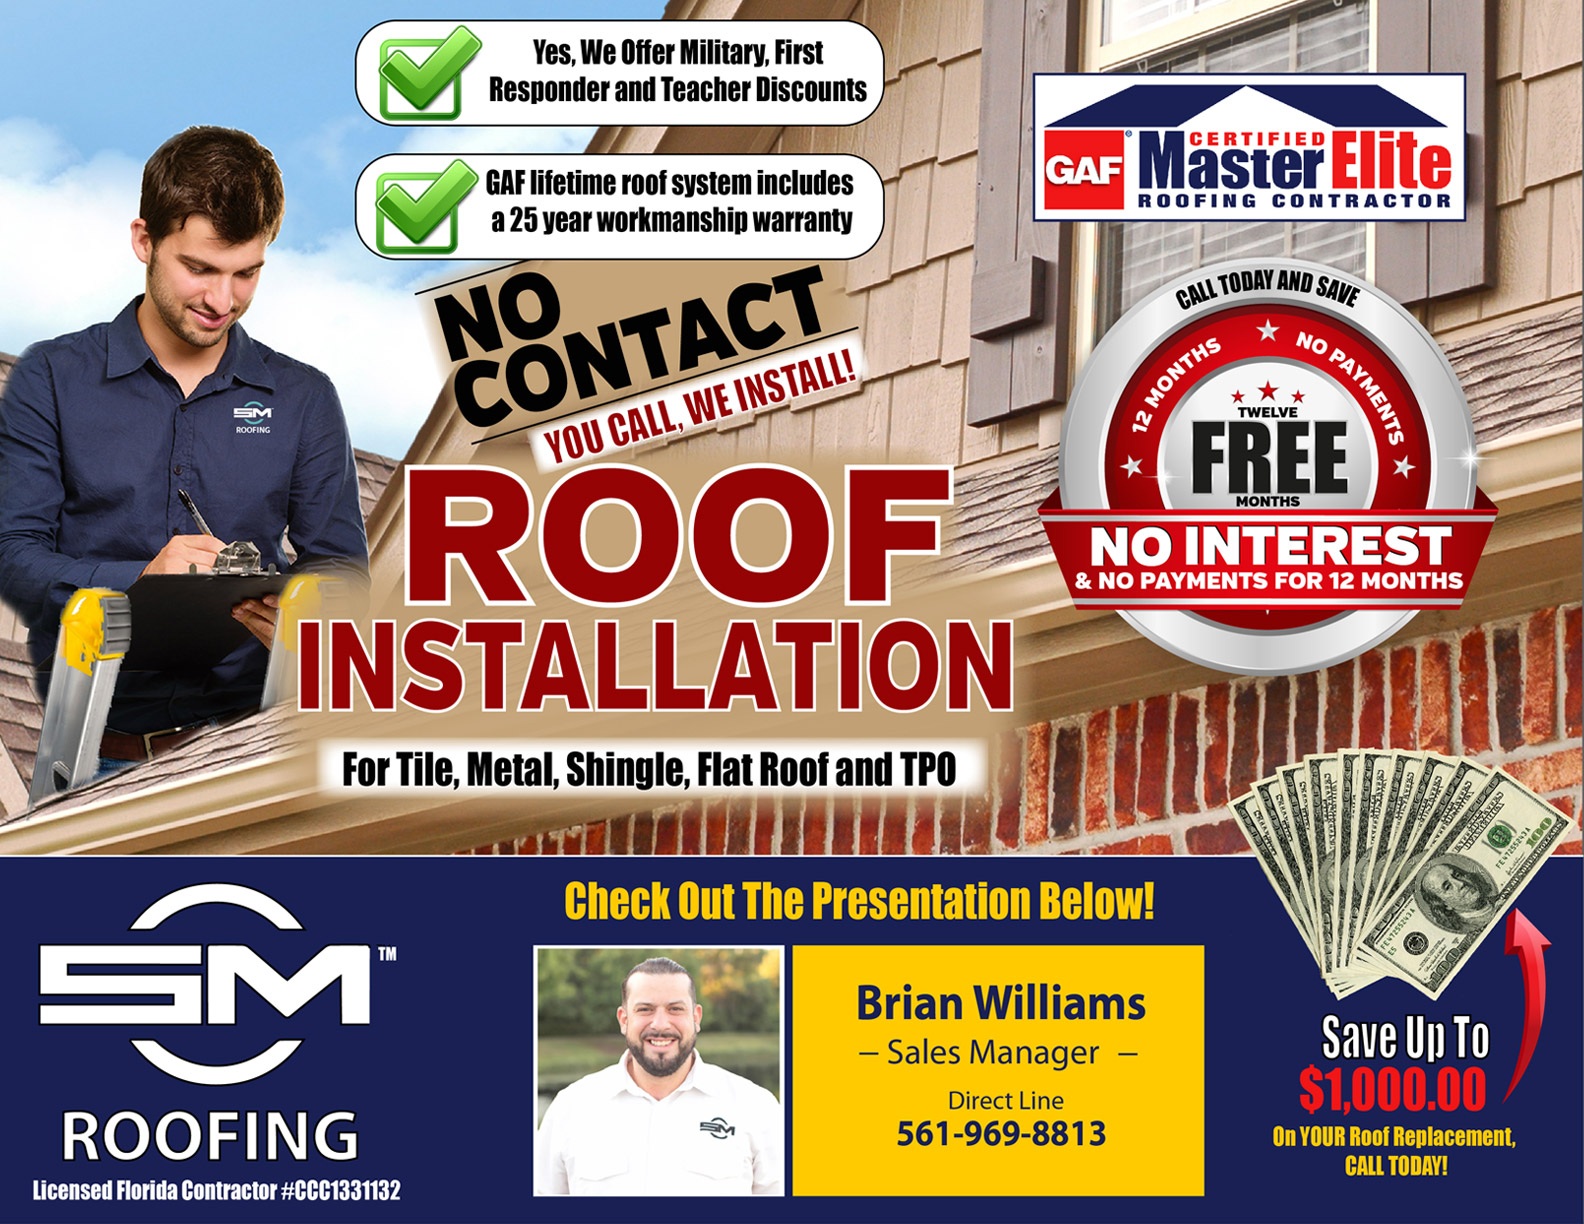 On behalf of SCM Roofing, Brian Williams welcomes you to our online presentation page. Below is a video which will walk you through each of the important aspects of our roofing process. Thank you for visiting, let's scroll down the page and begin.